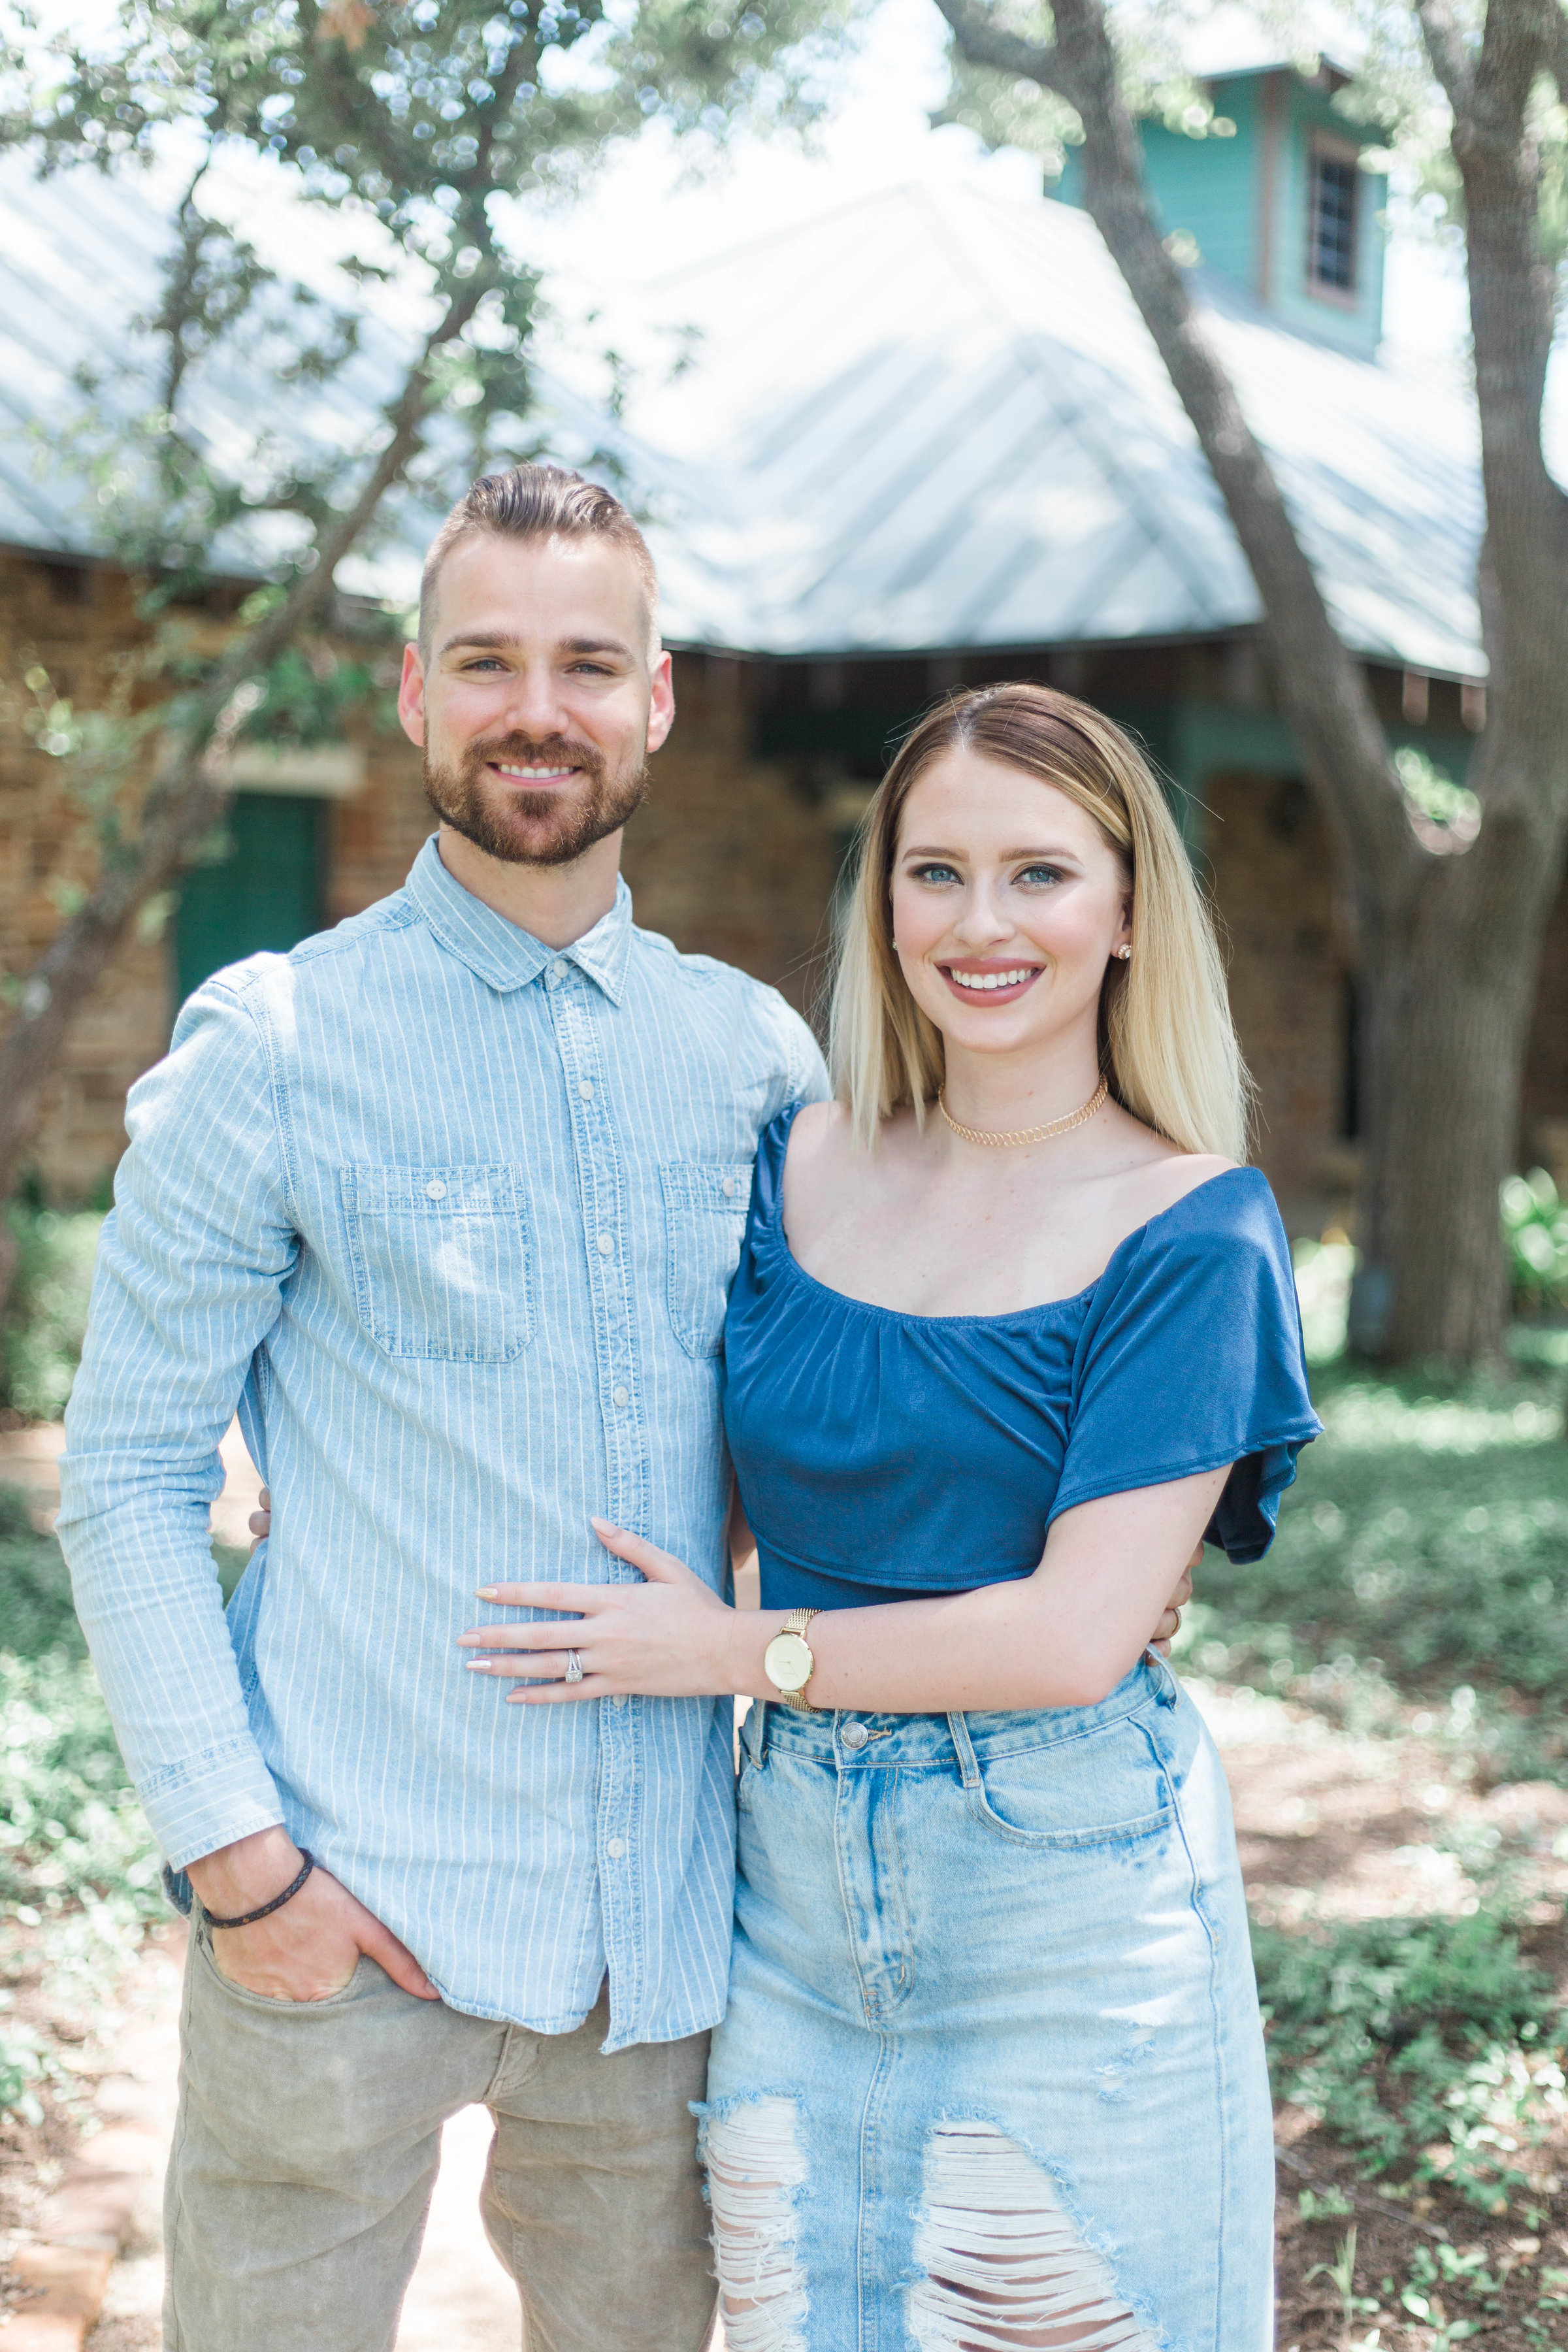 Aaron & Candace Campbell  Worship Pastor & Children's Pastor   Aaron is our Worship Pastor. Candace is our Children's Pastor overseeing all ages from birth to fifth grade. Together they have a passion for raising up leaders and pouring into the next generation!